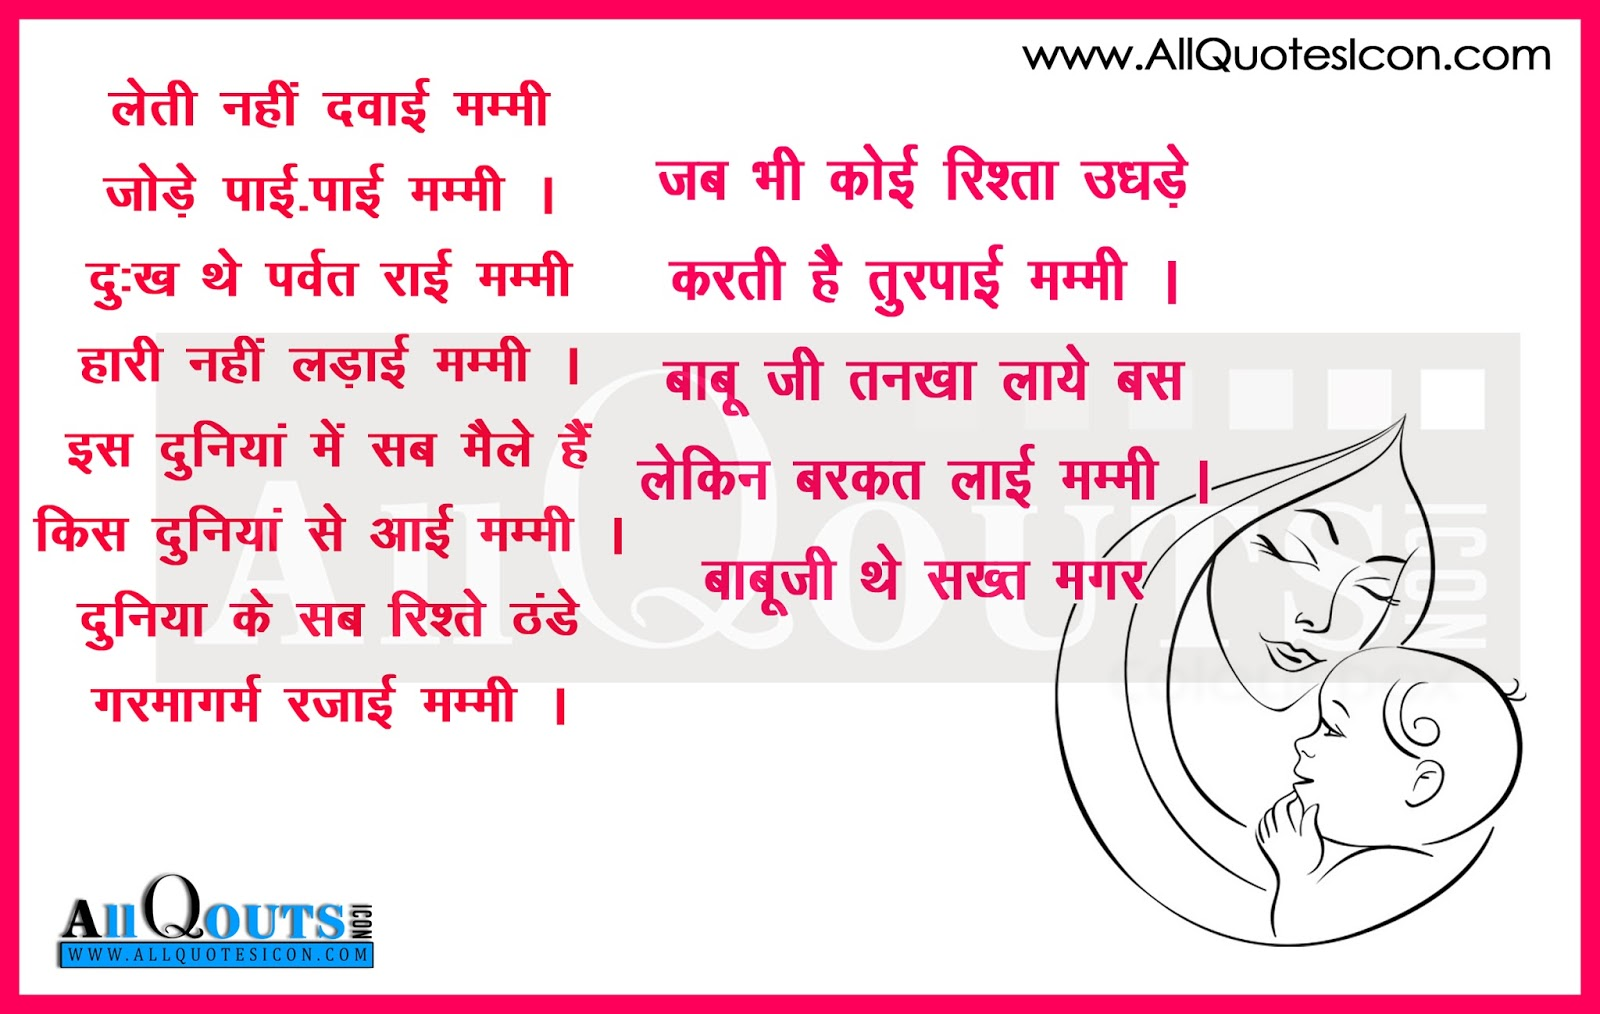 014 Essay Example Hindi Mothers Day Wishes Images Quotes Sms Messages Top In Kannada Contest Mother's Telugu Full